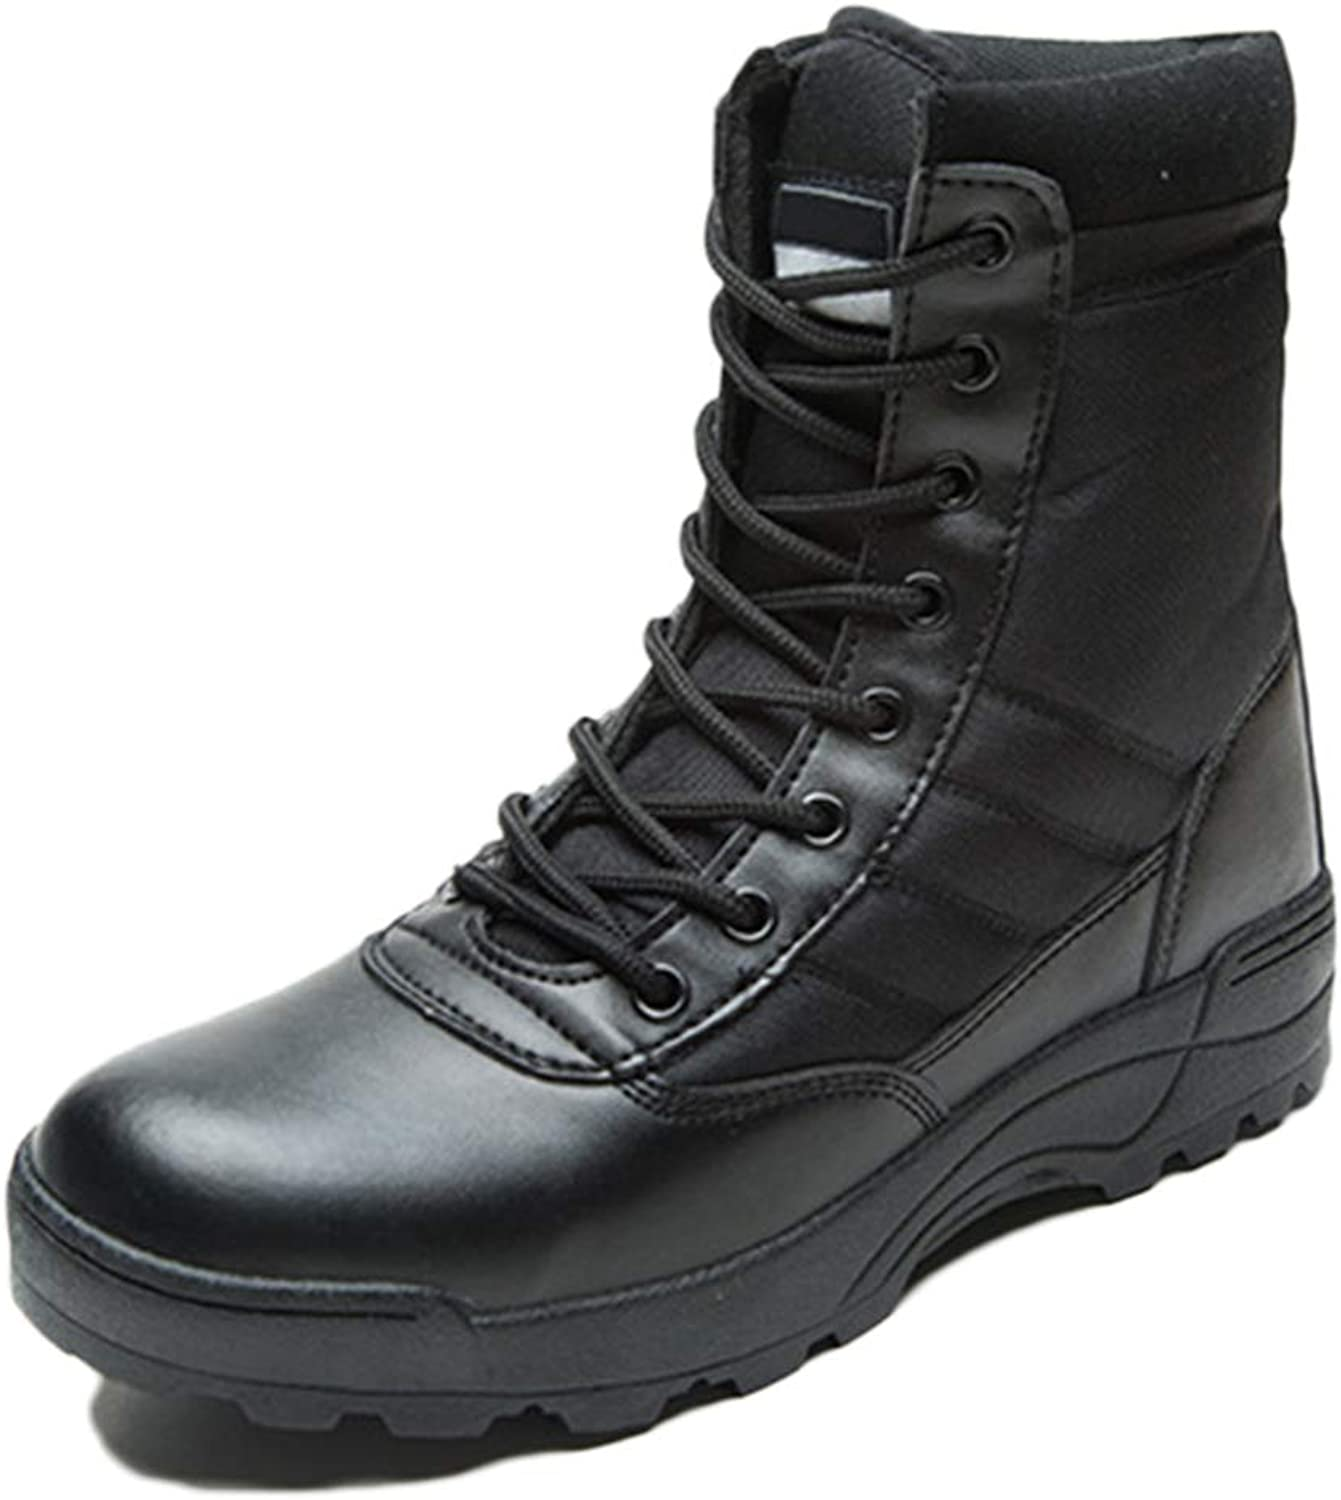 ASJUNQ Men's Skid Work Boots High Top Army Boots Chelsea Wear Martin Boots Hiking shoes Desert Boots